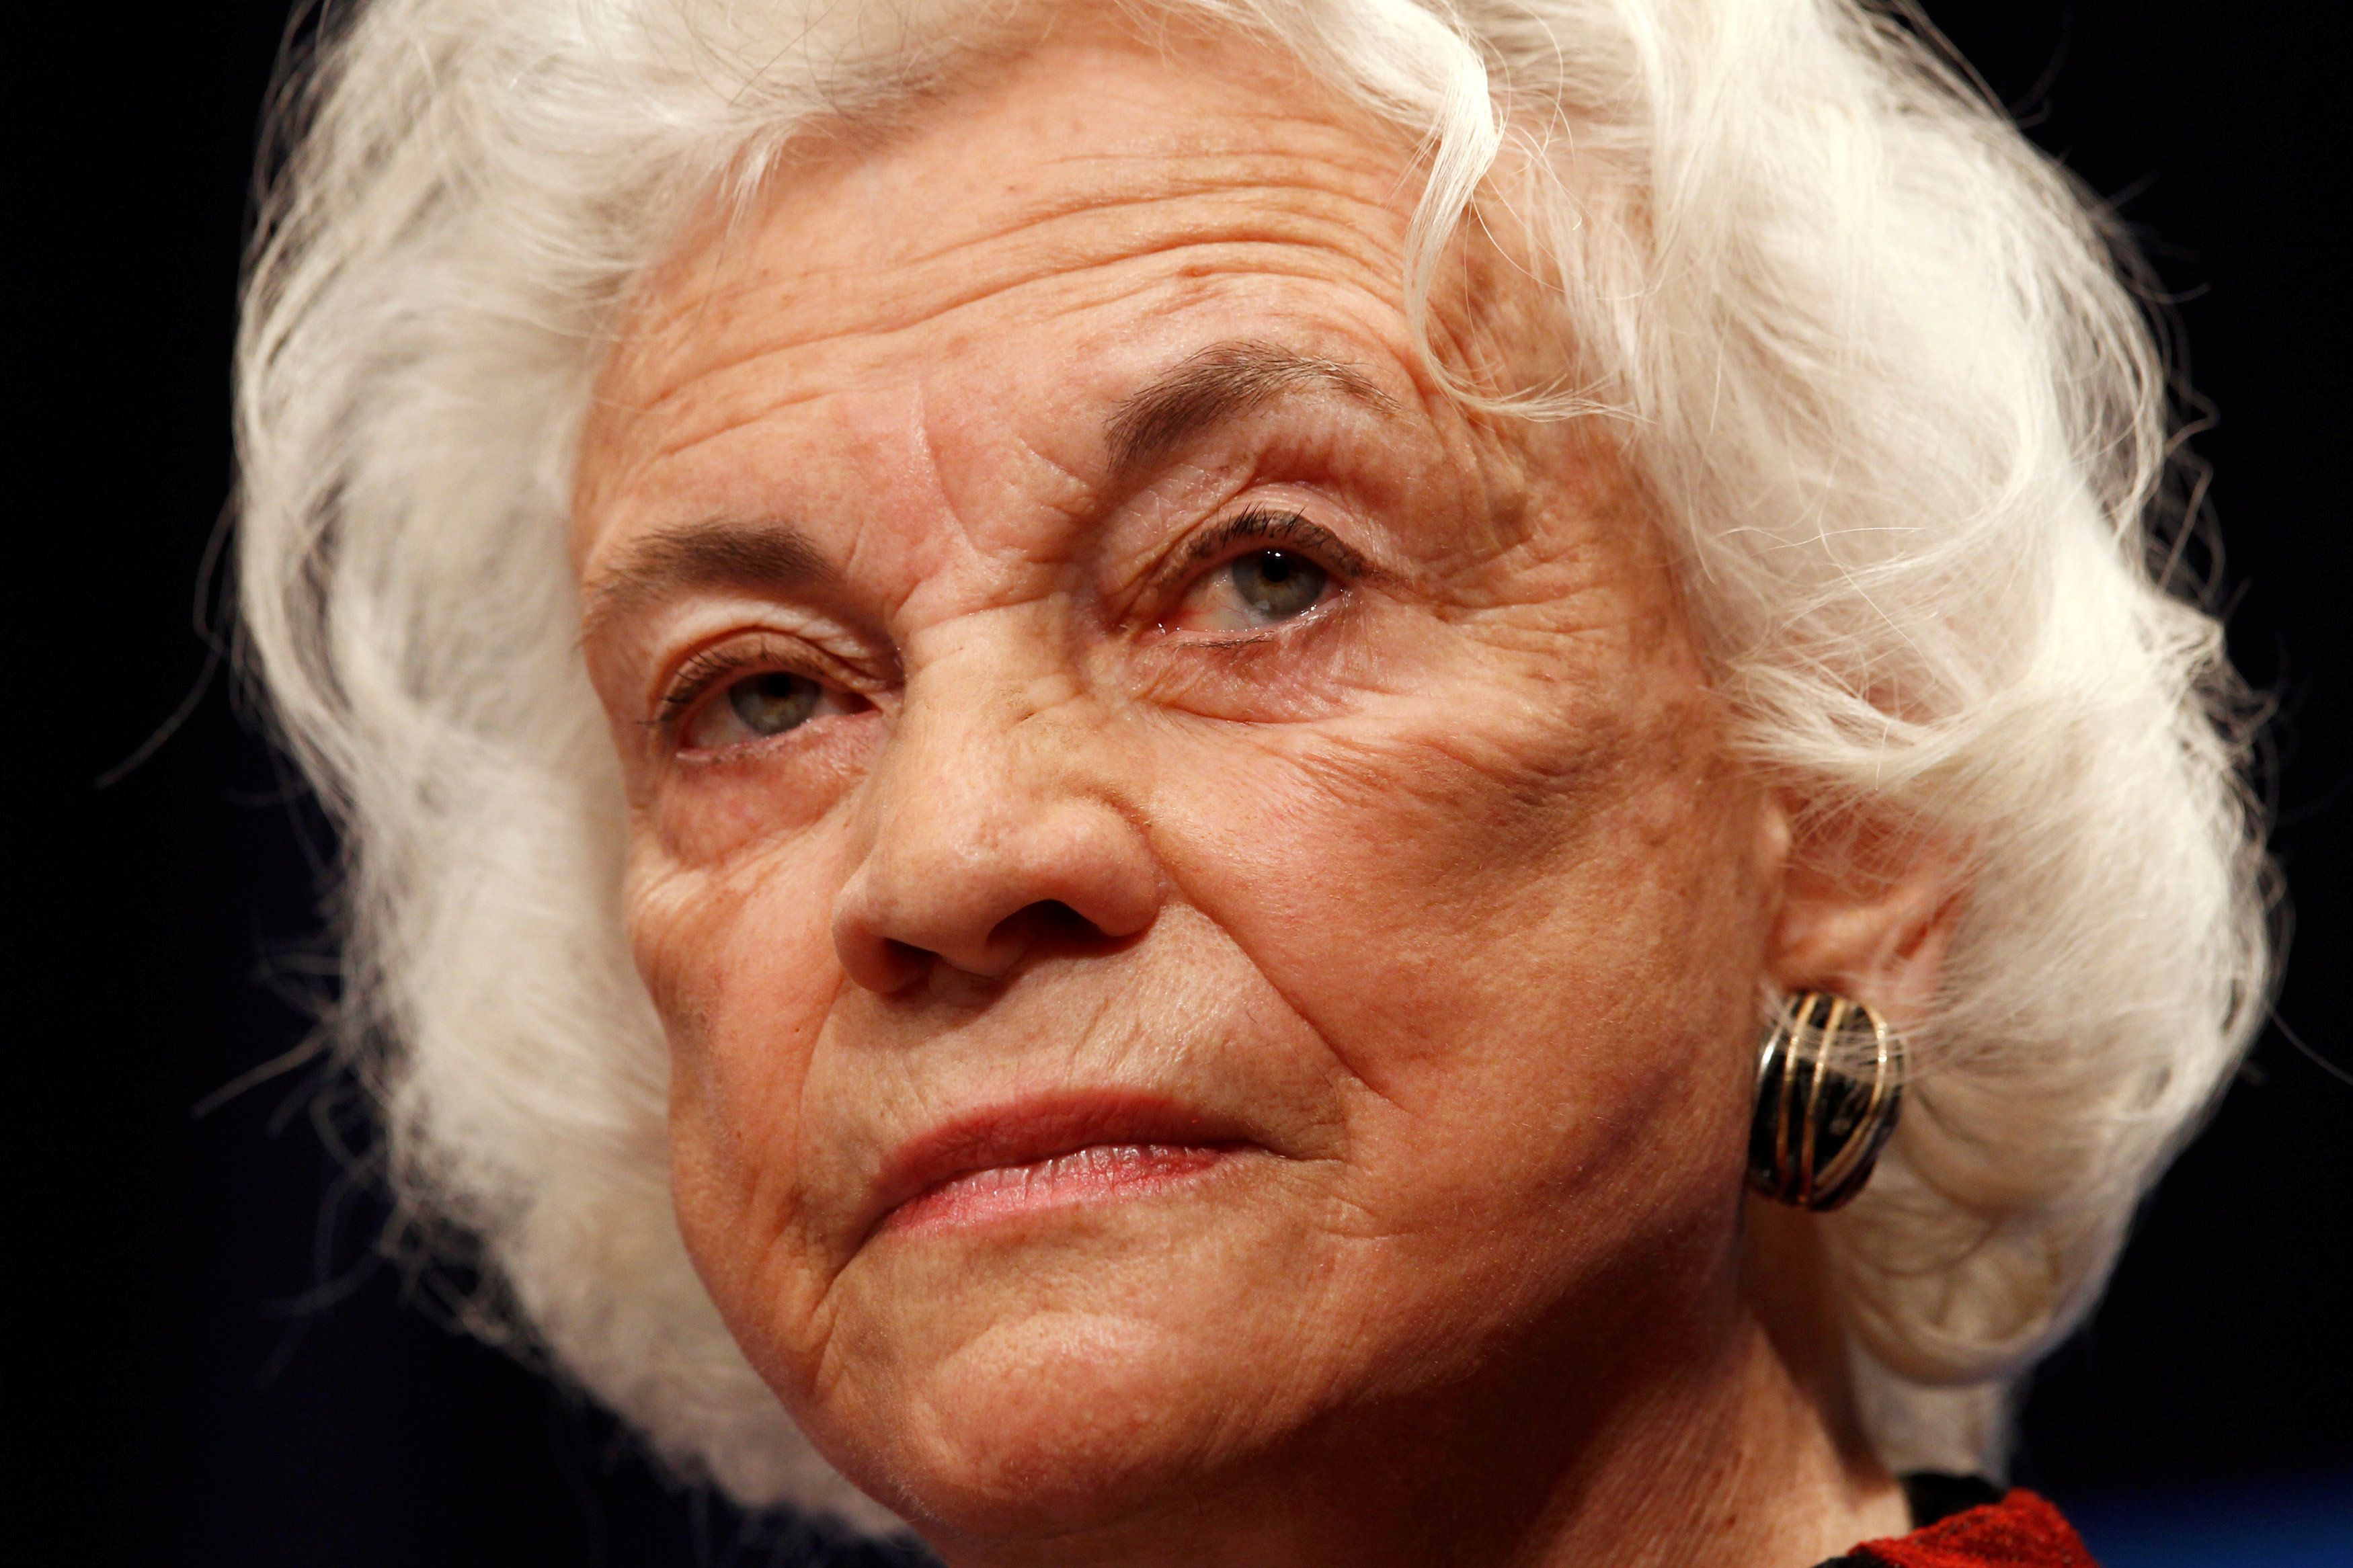 Sandra Day O'Connor, First Woman on Supreme Court, Diagnosed With Dementia